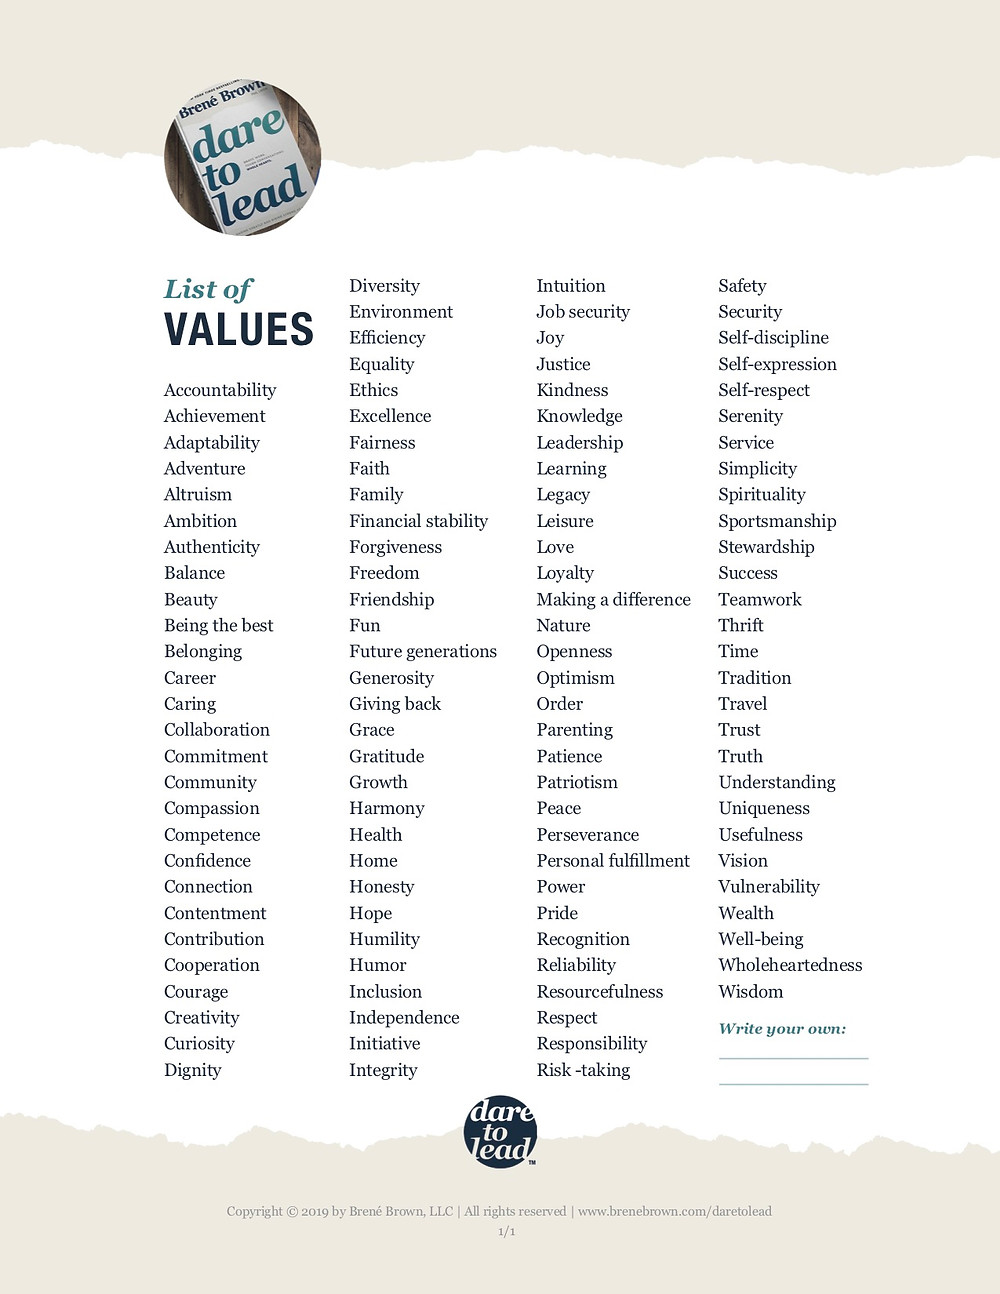 Your Personal Core Value List